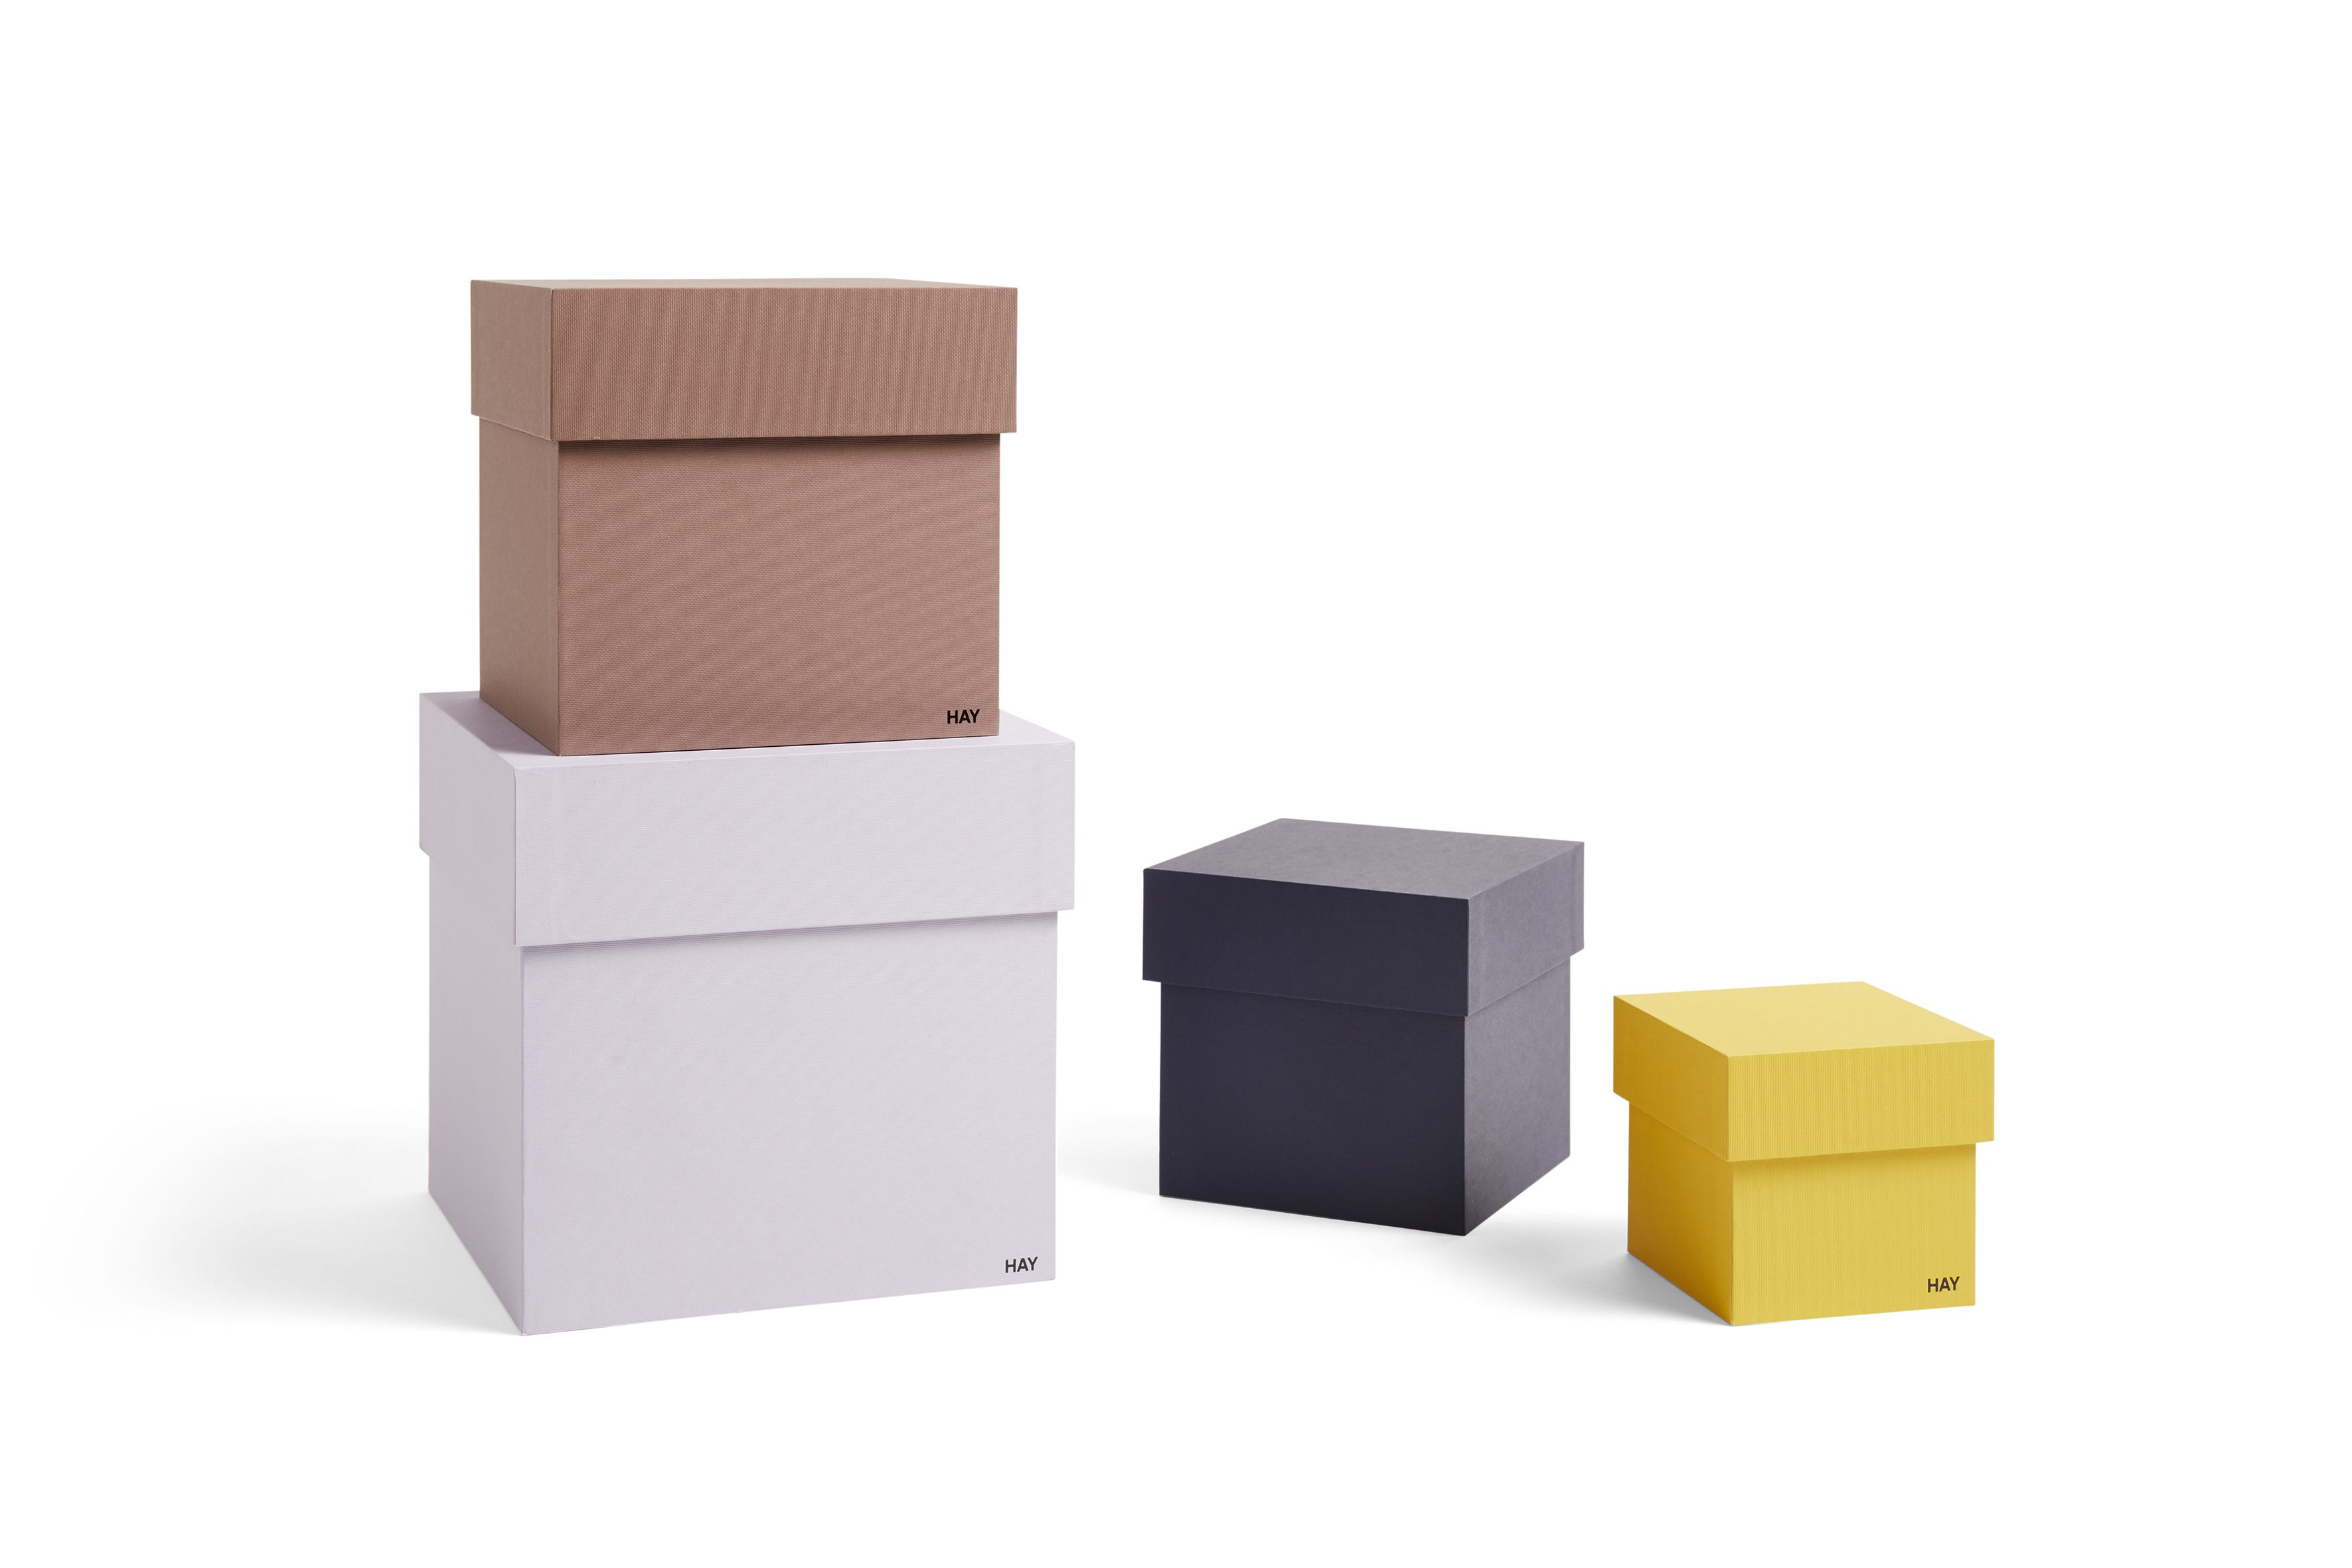 Box Box combines sizes and colours to organise and store smaller items. Made in thick cardboard with matching lid.